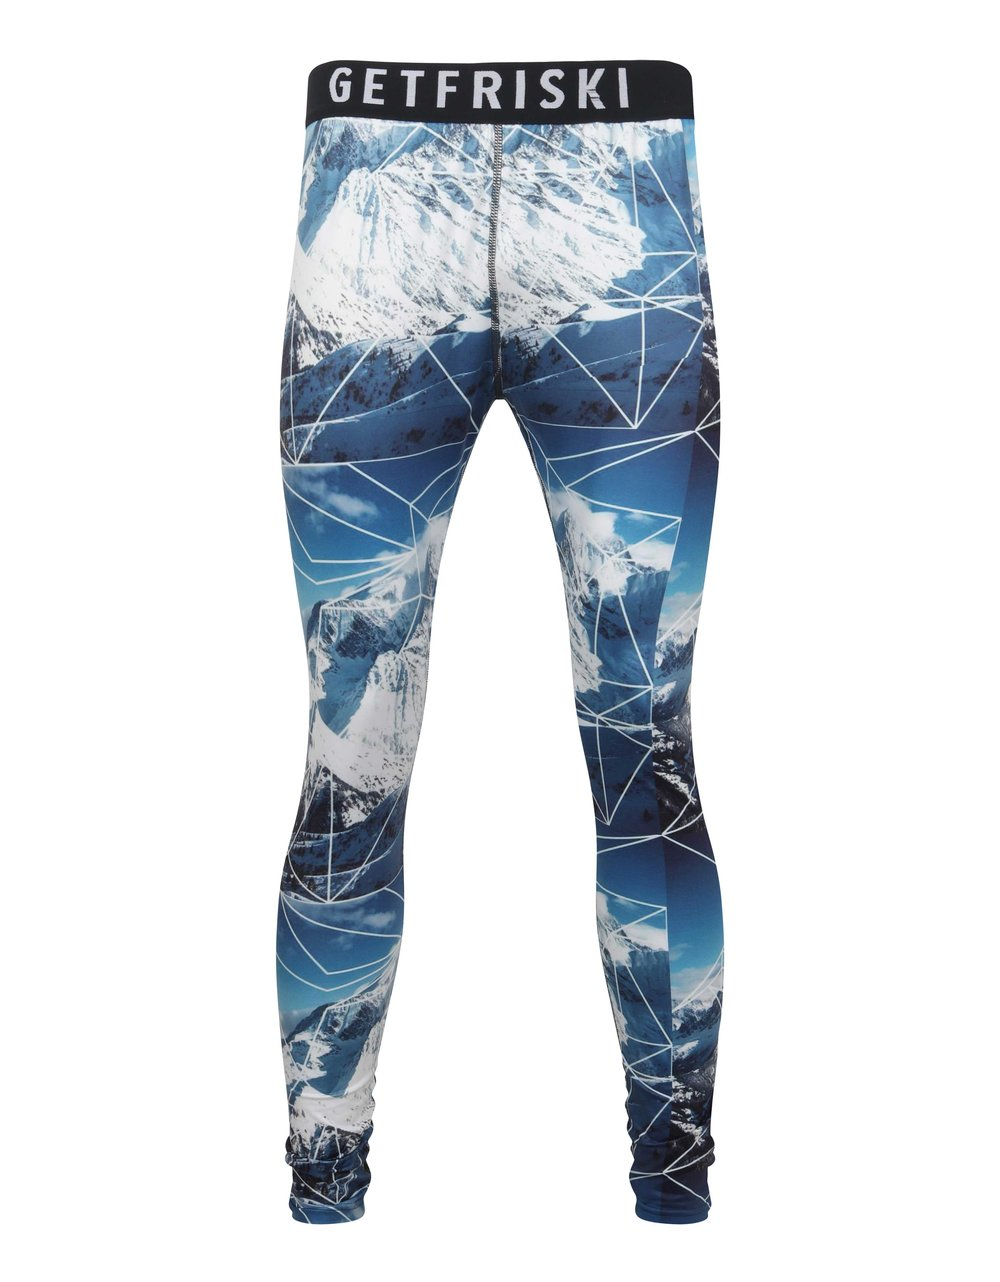 THE SUMMIT- UNISEX THERMAL LEGGINGS